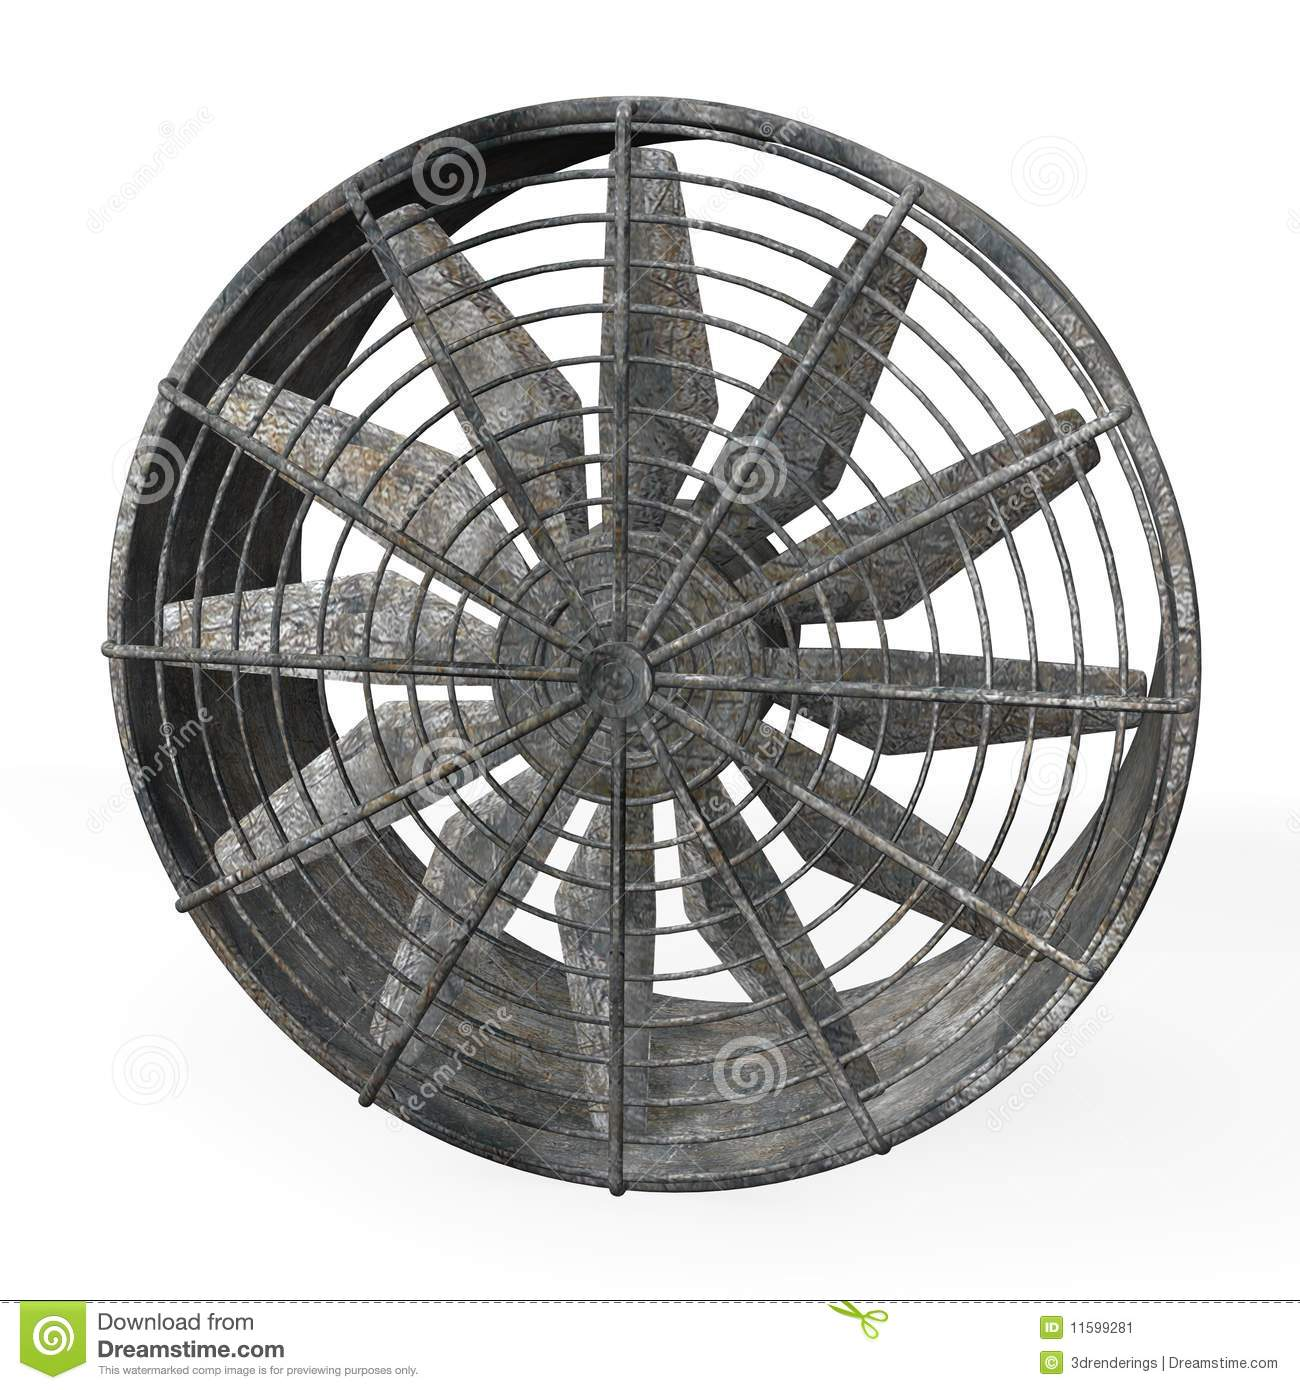 Big Fans Commercial : Large industrial fan stock illustration image of airfan